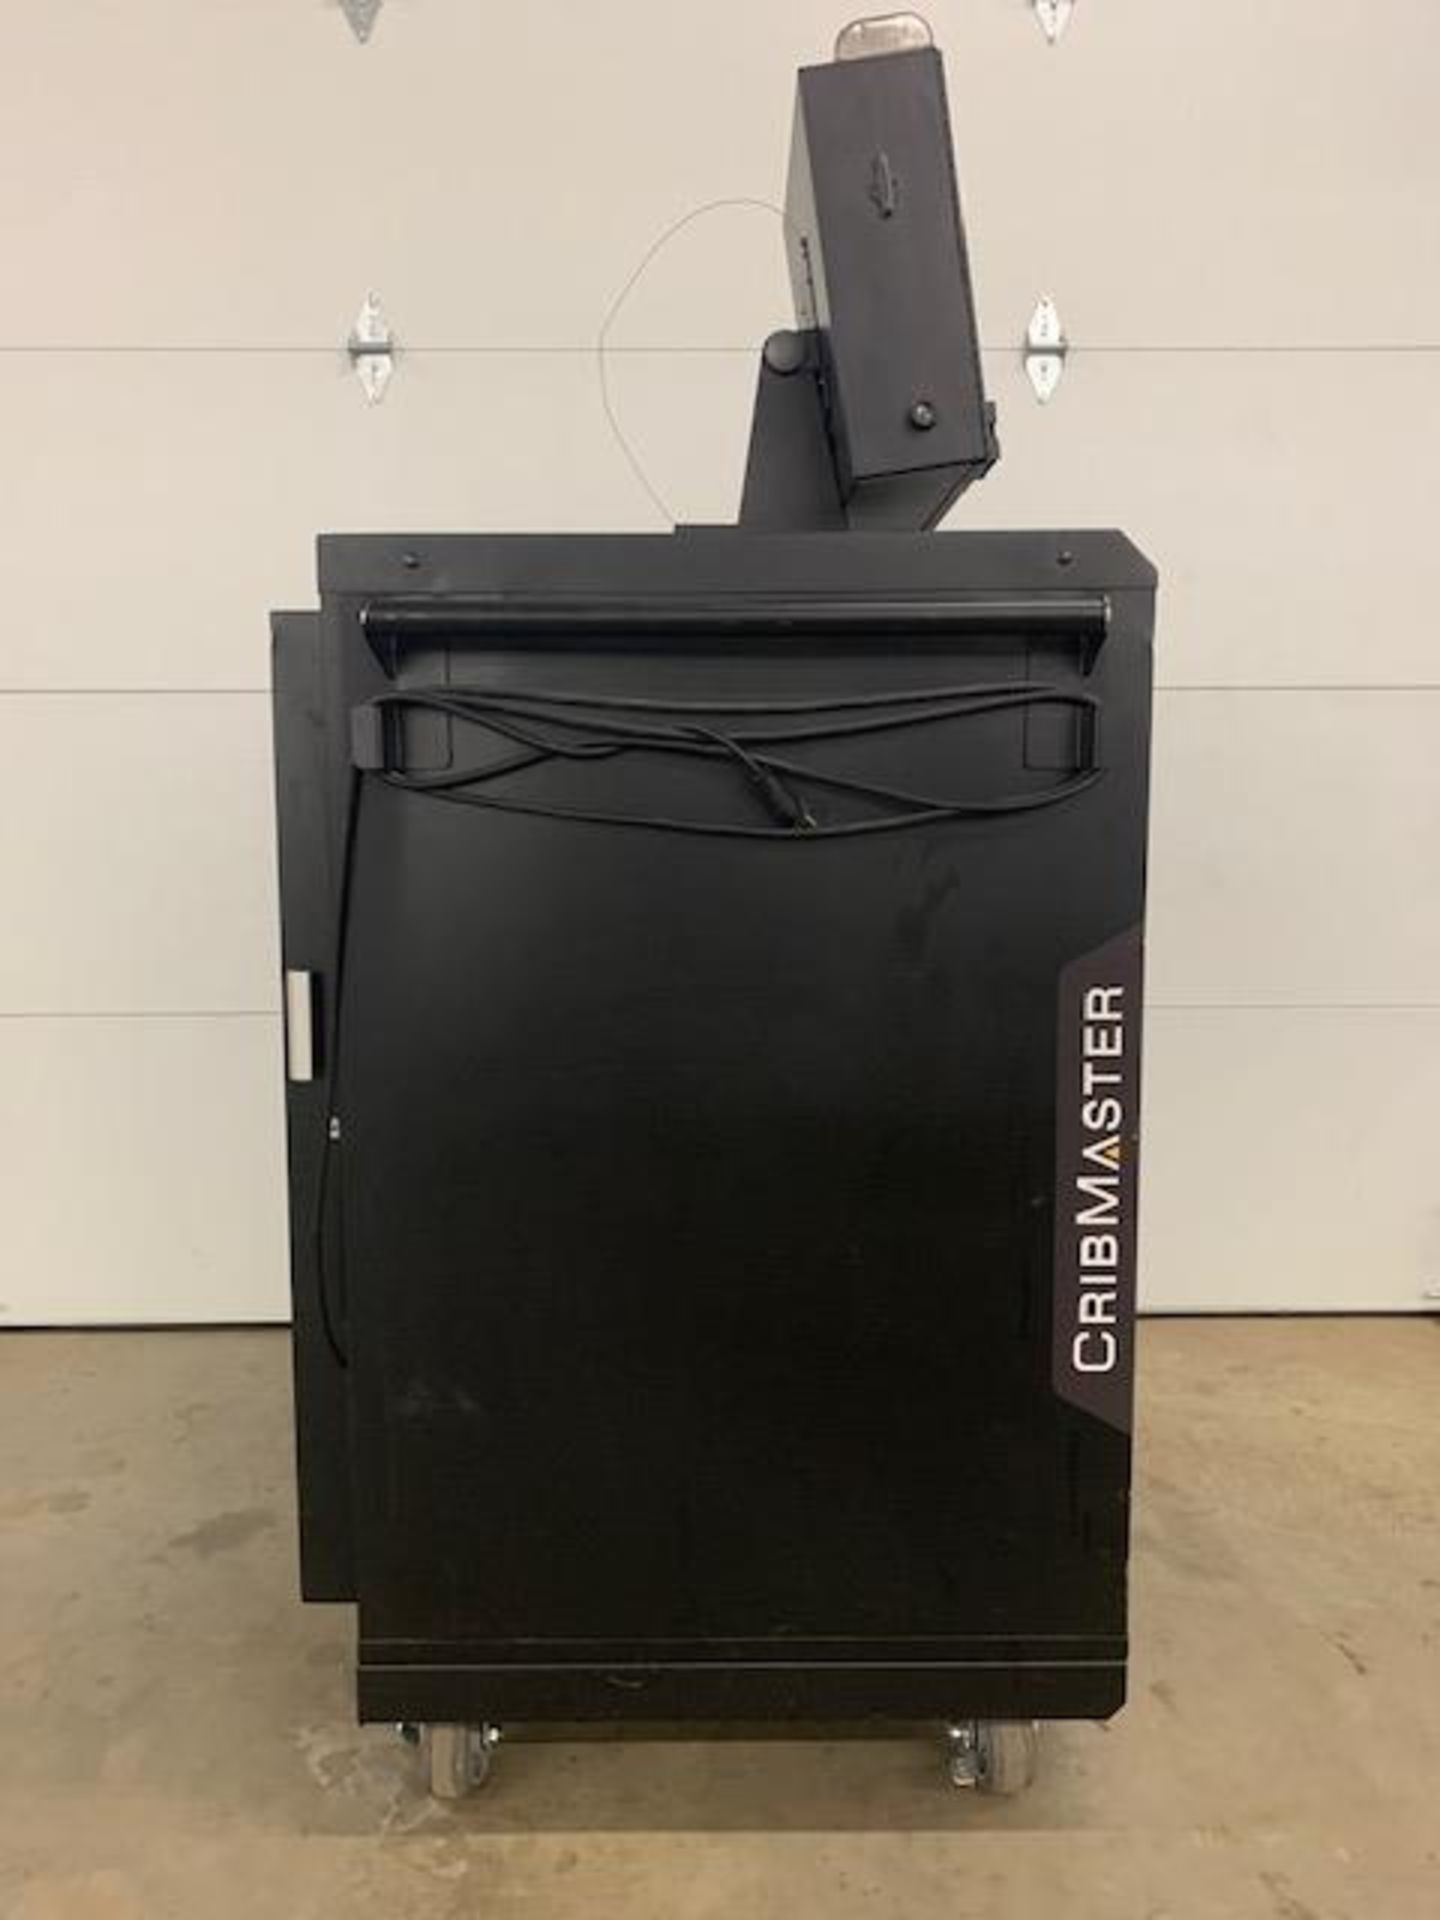 Cribmaster AccuDrawer - Image 7 of 9